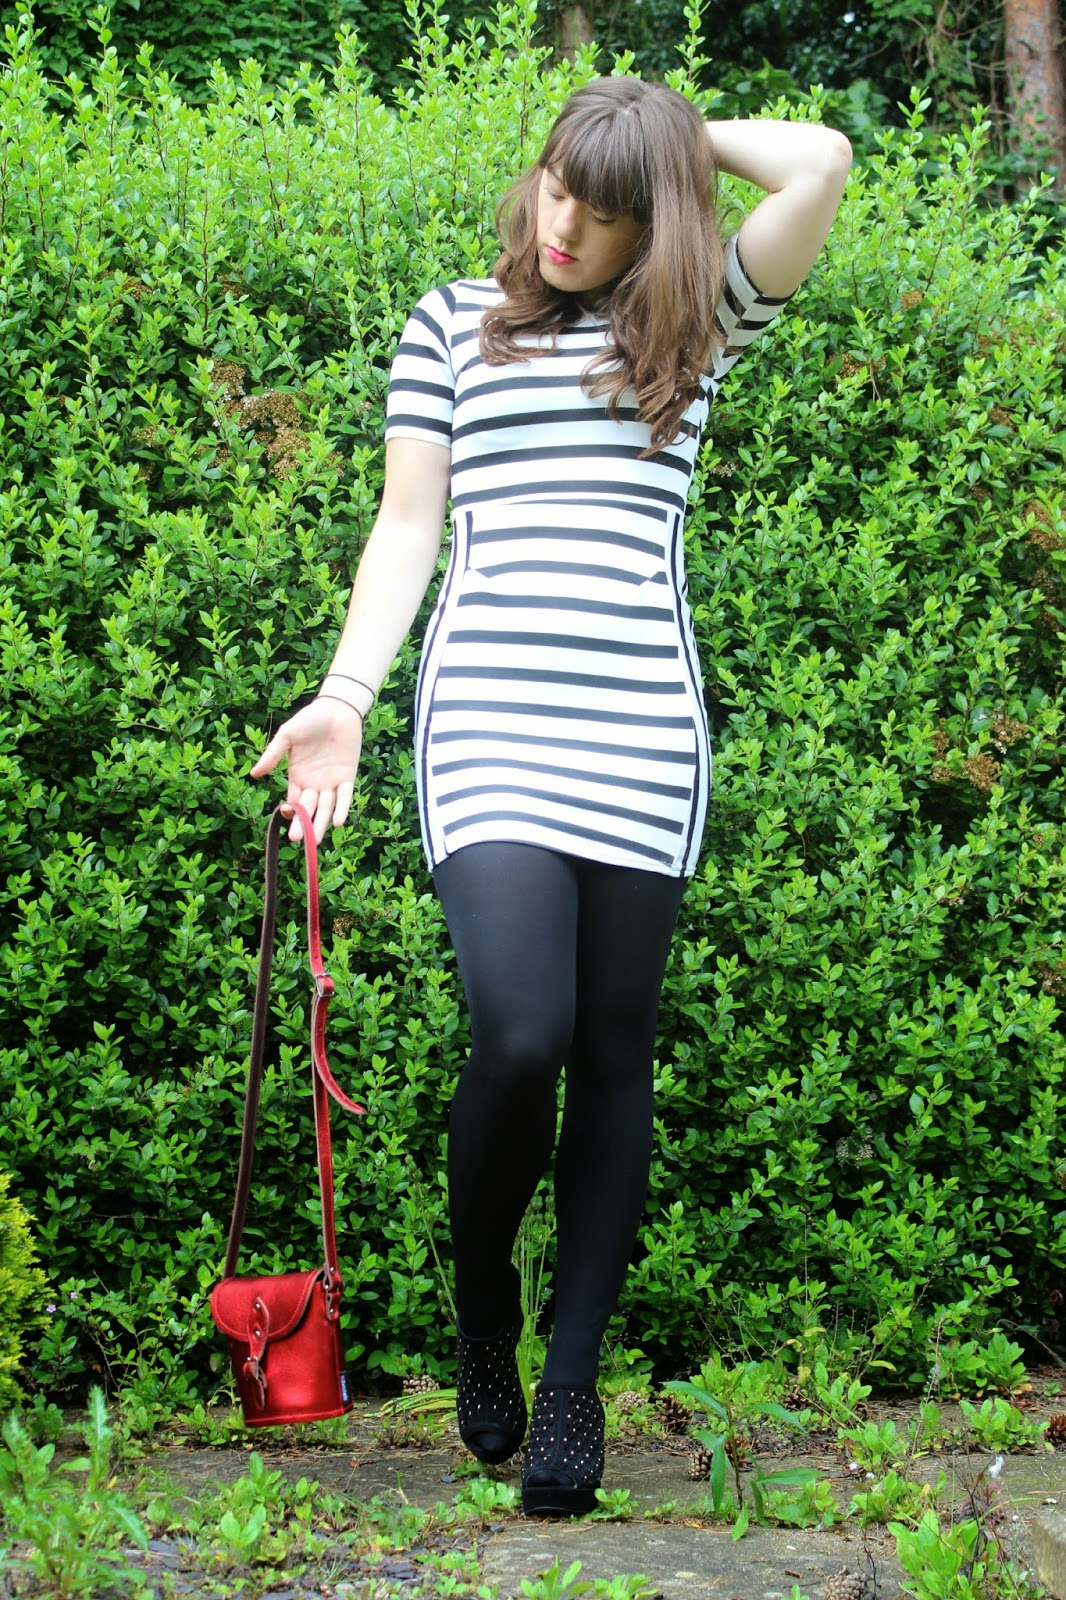 OOTD: Stripes and Scarlet